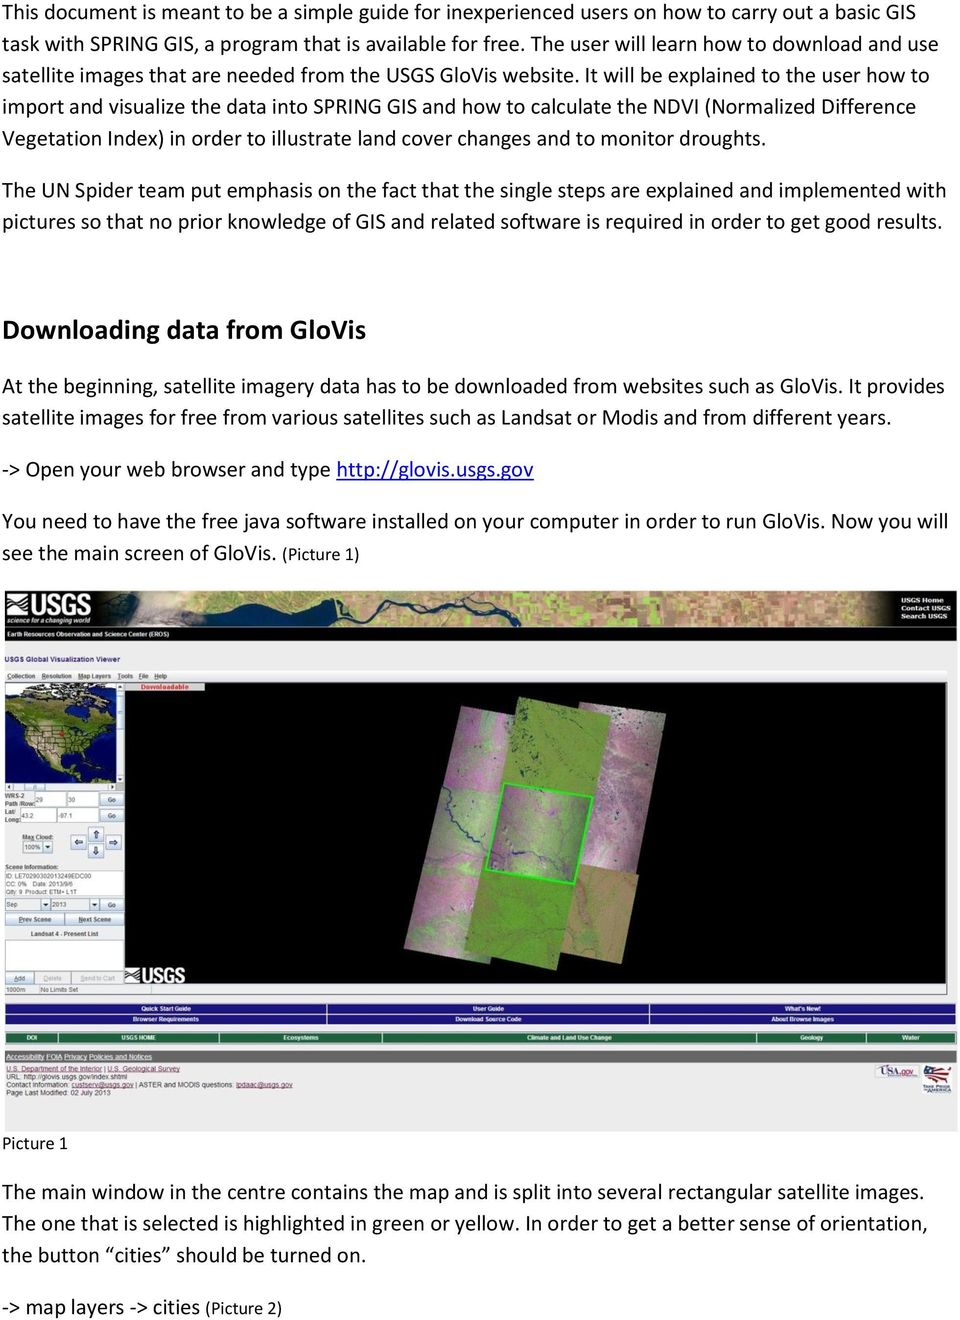 and satellite image download with the USGS GloVis portal - PDF